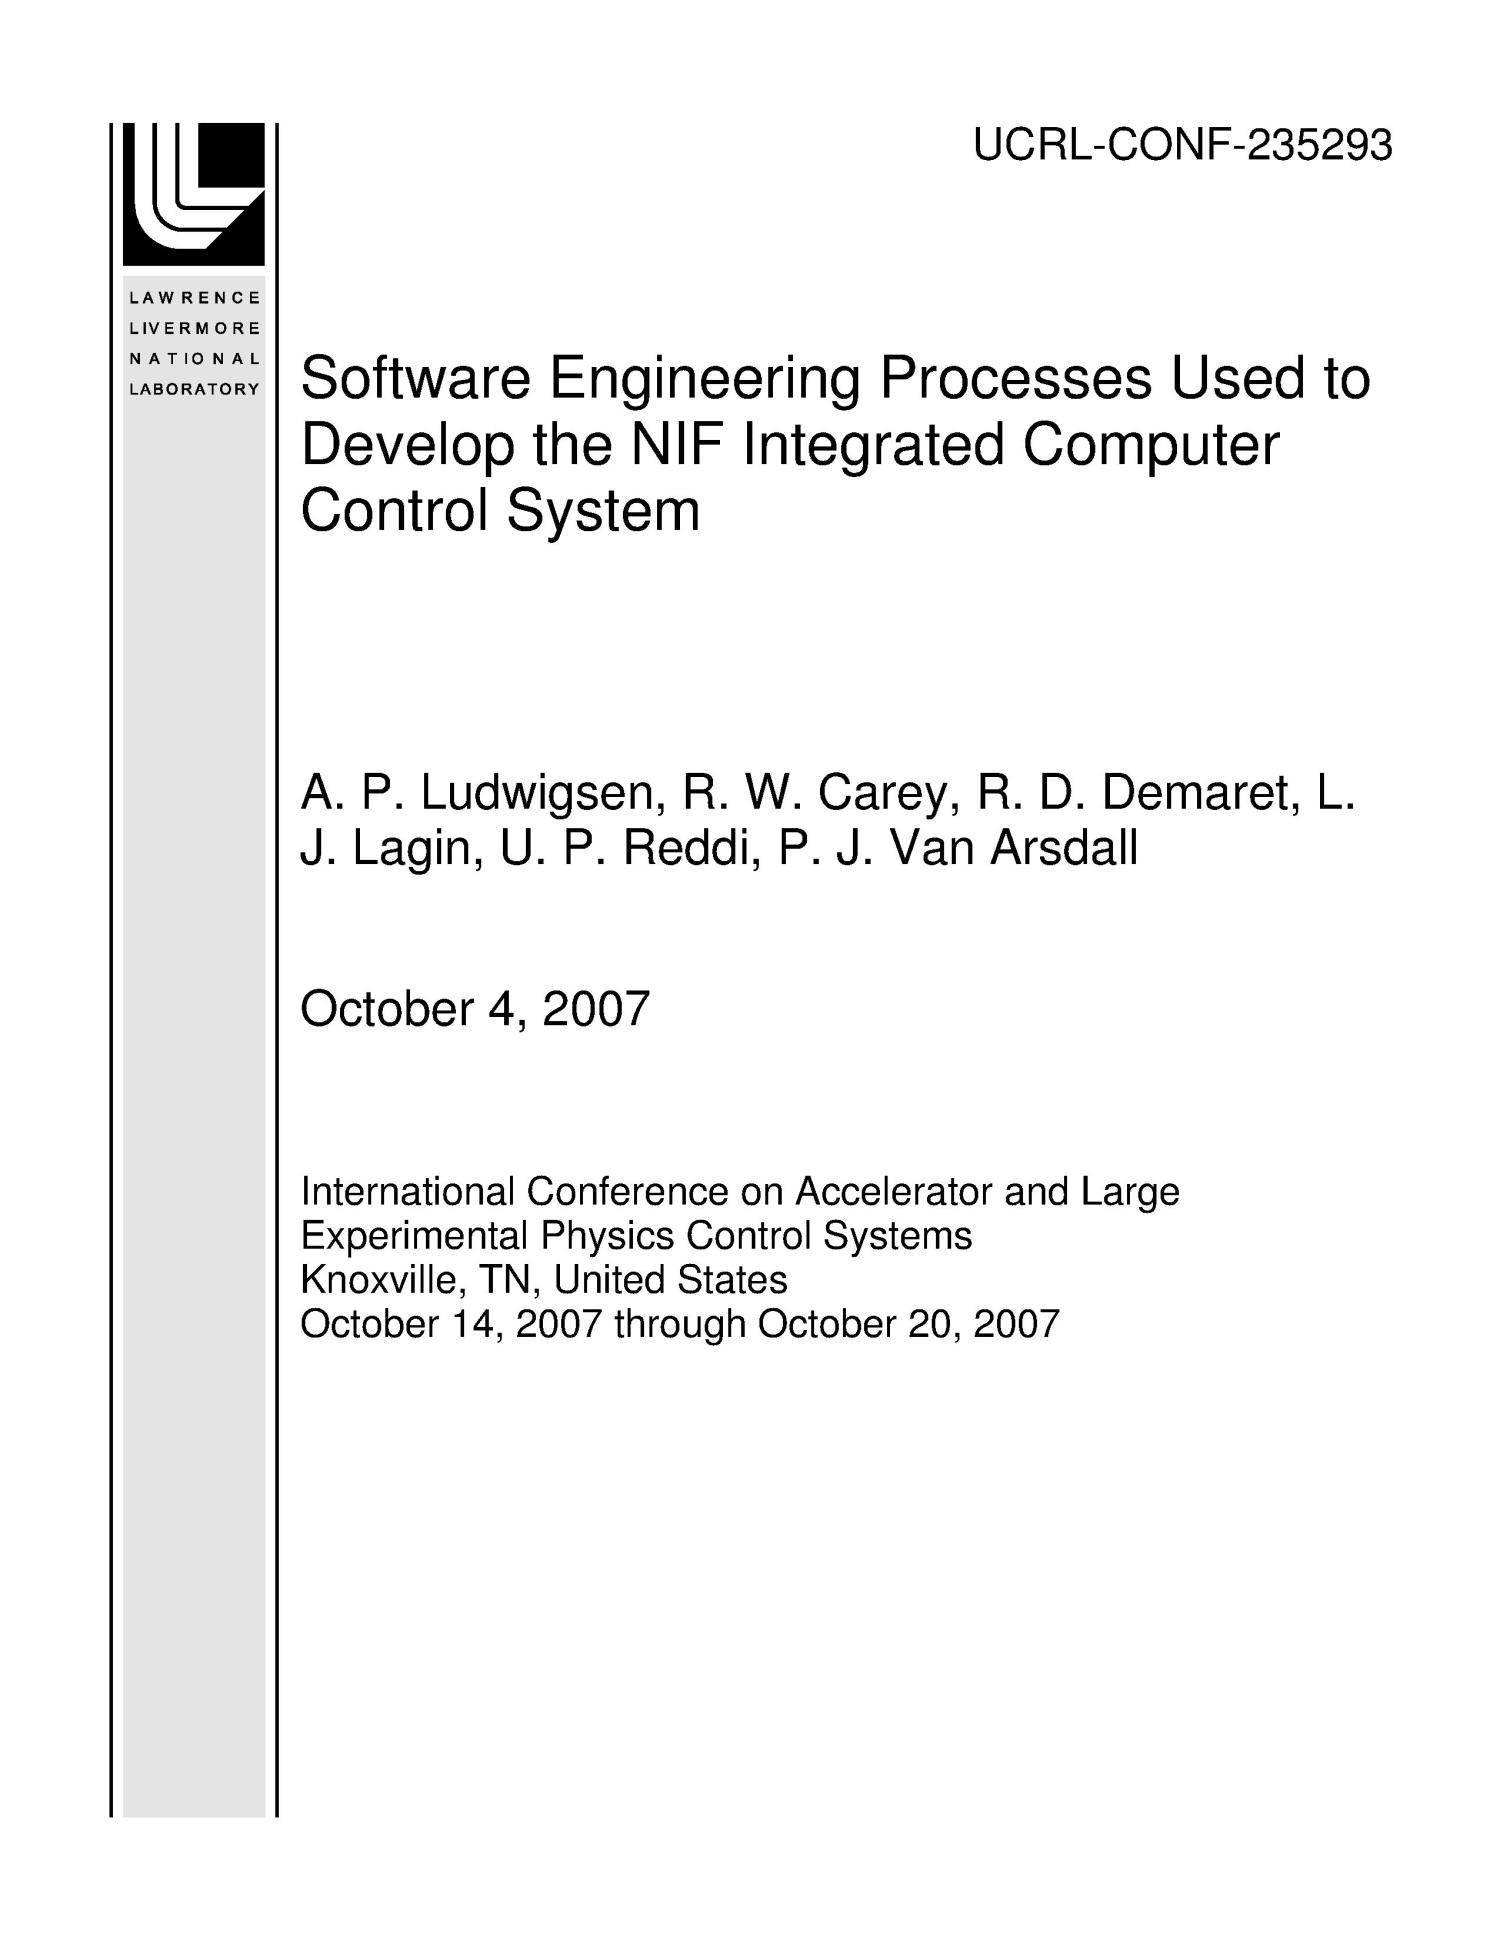 Software Engineering Processes Used to Develop the NIF Integrated Computer Control System                                                                                                      [Sequence #]: 1 of 7